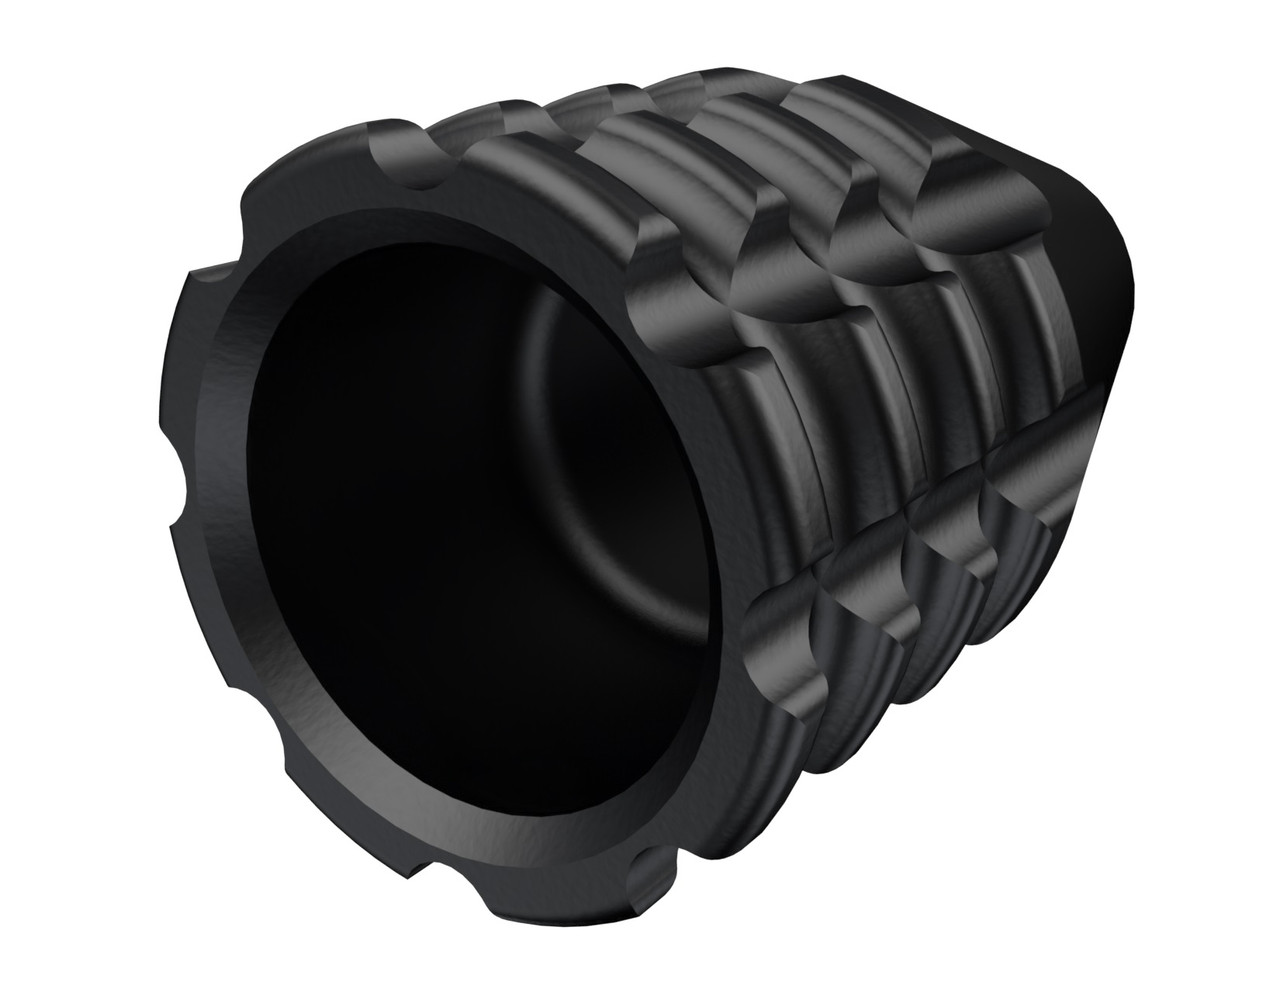 """Rowe TacticalRemington 700 Bolt Knob / Savage Bolt Knob 5/16""""-24 Stainless Steel PVD Coated - CNC Milled Cross Hatch Pattern - Black"""